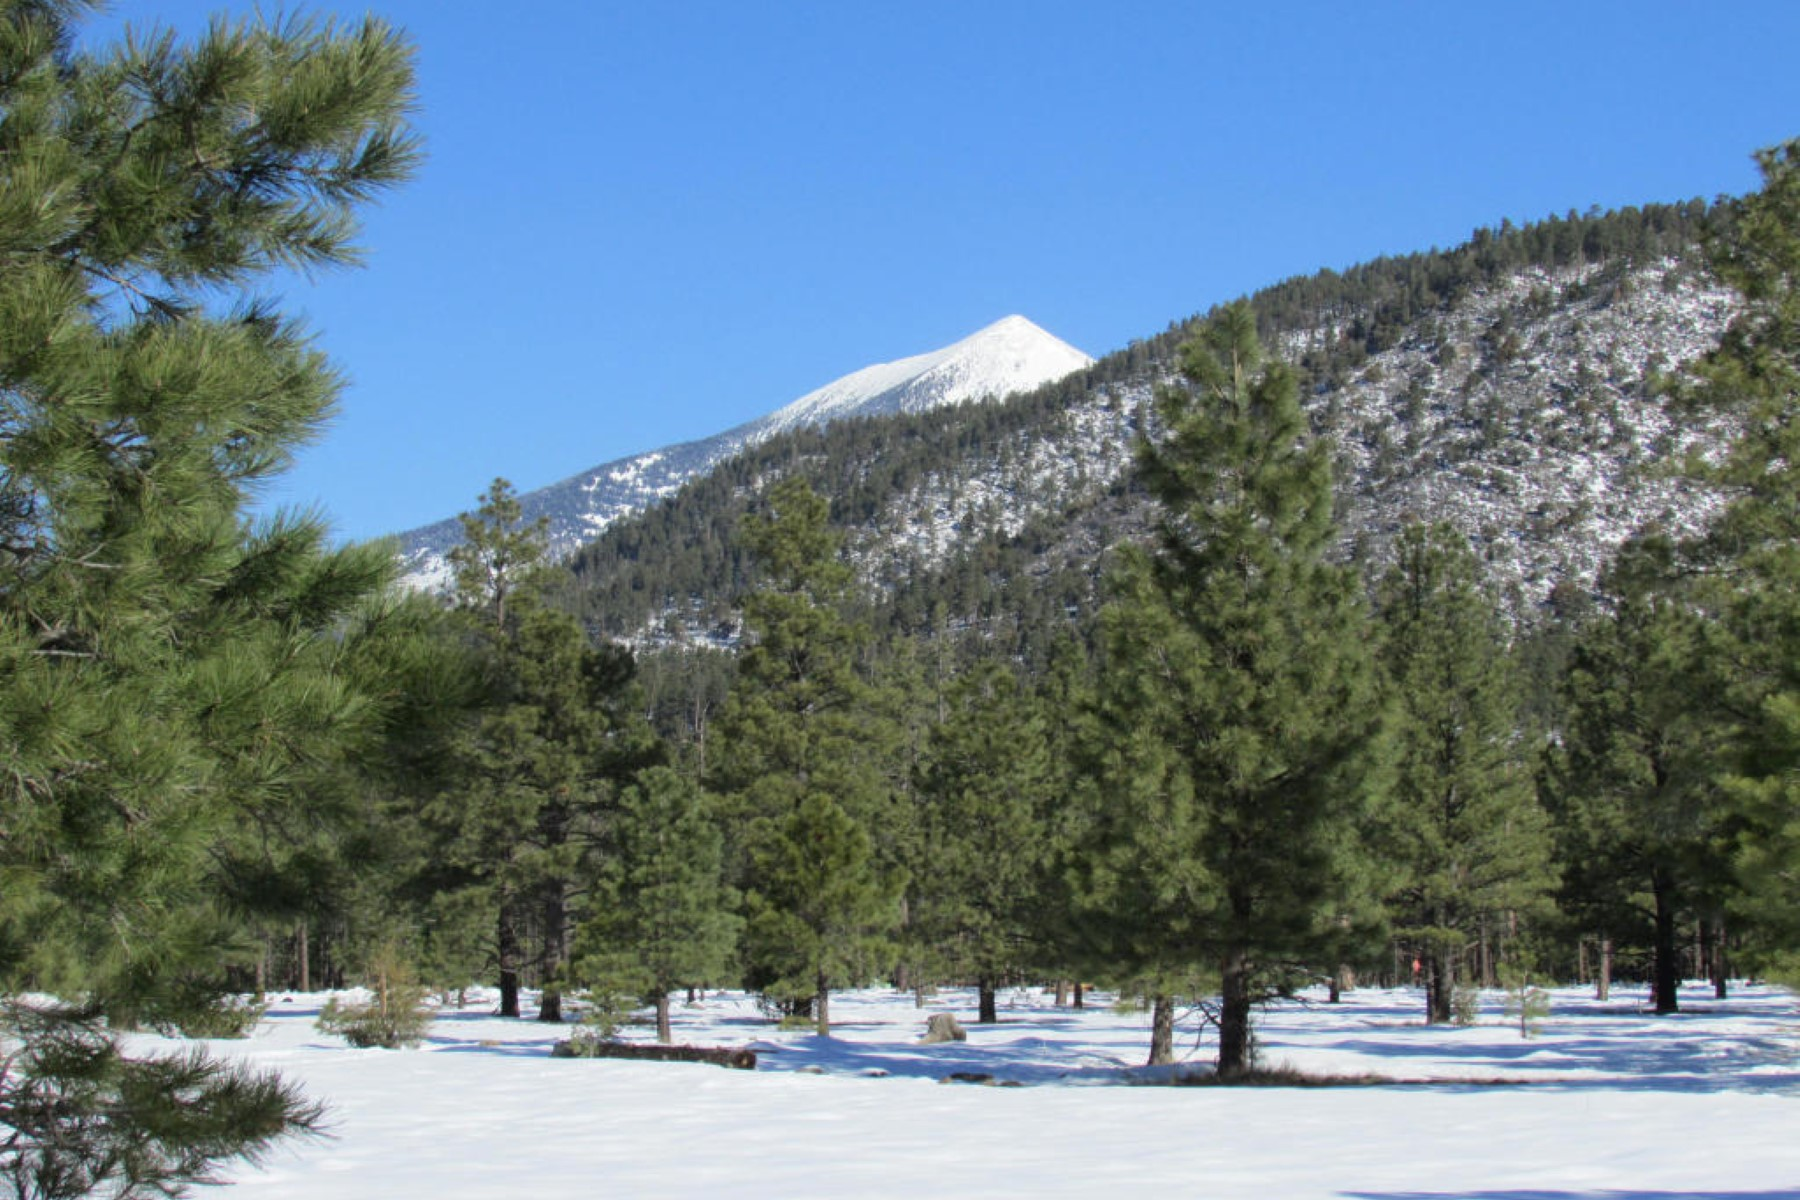 Land for Sale at Parcel 3 of Tract 8M, Lockett Ranches Par 3 Tract 8m Lockett Ranches Flagstaff, Arizona, 86001 United States